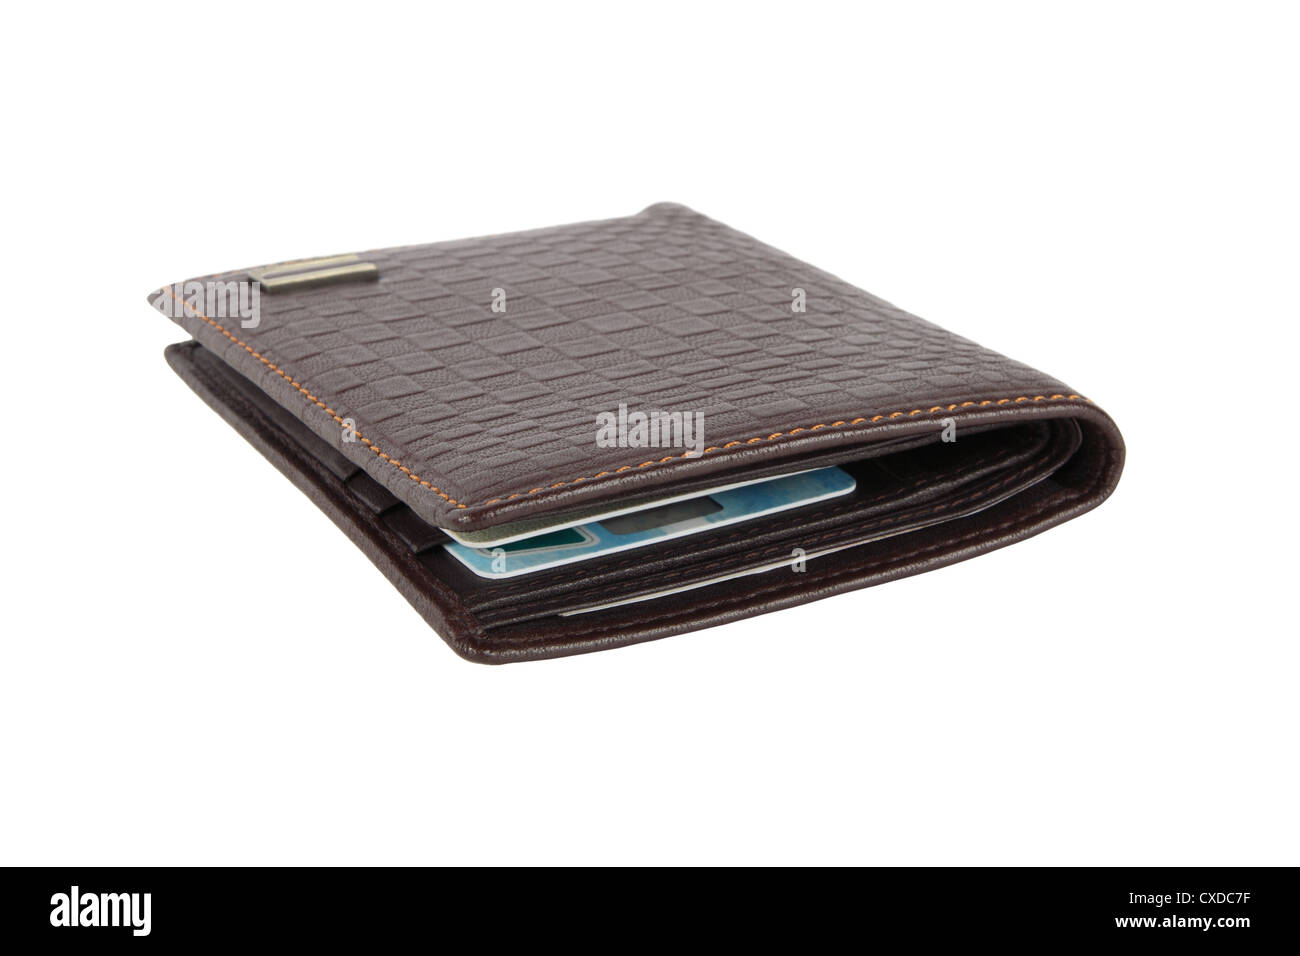 leather wallet - Stock Image